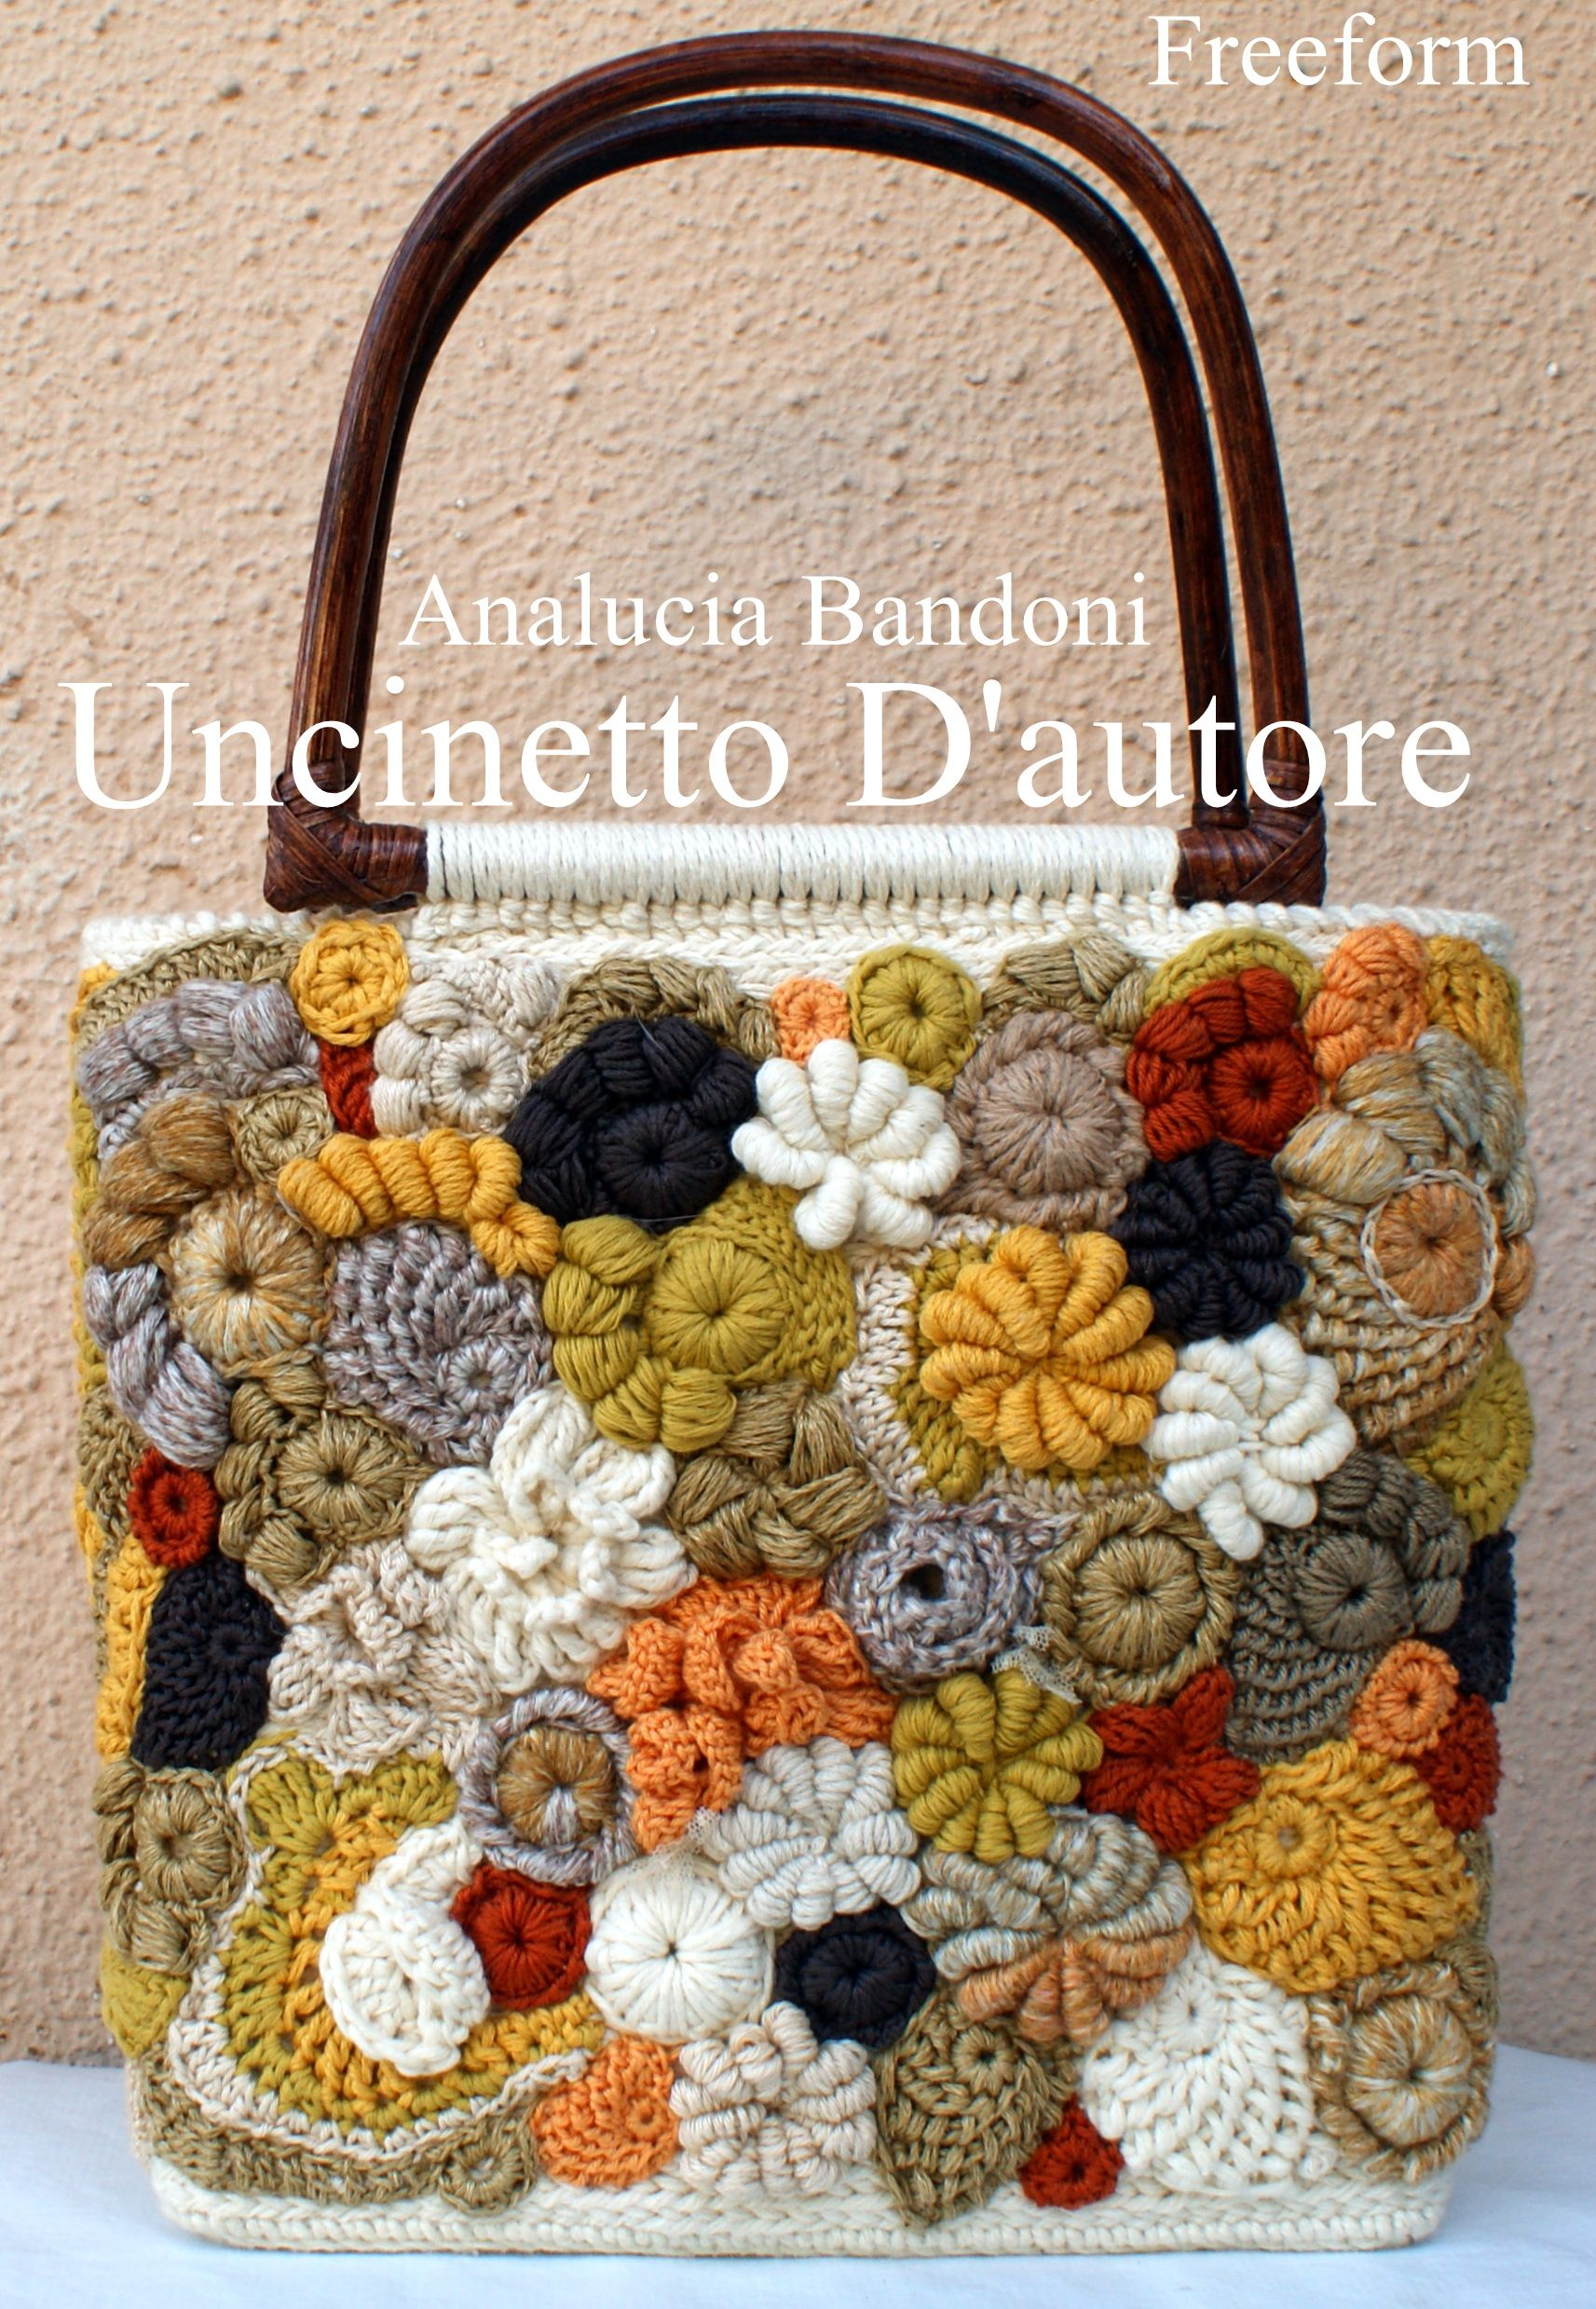 Crochet bag borsa uncinetto bolsa croche freeform